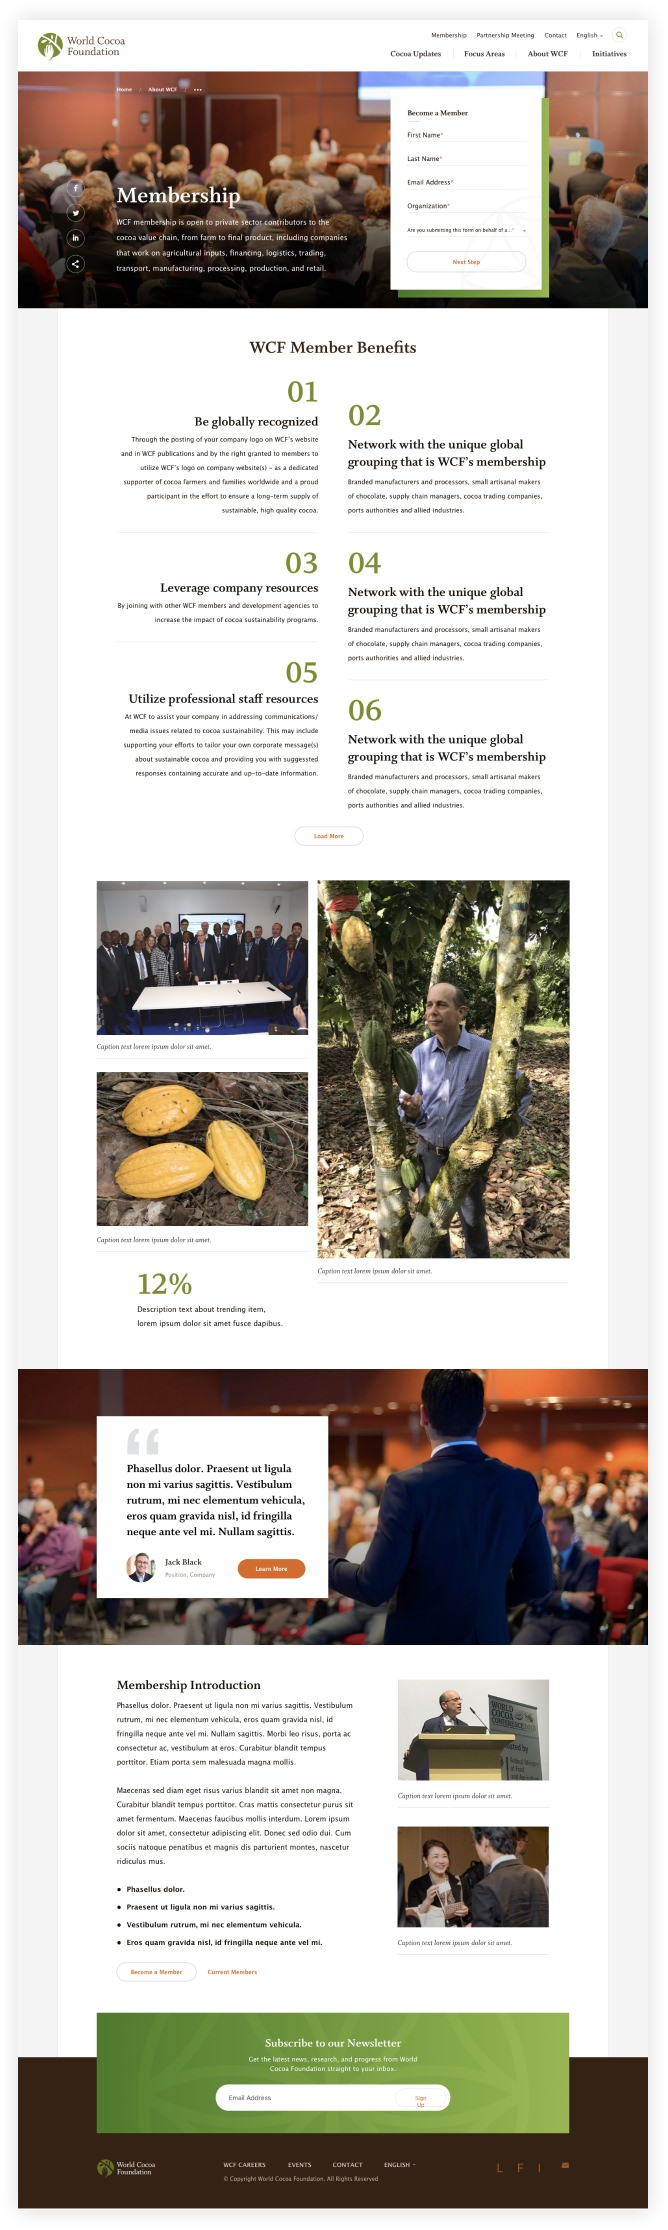 Membership page of World Cocoa Foundation